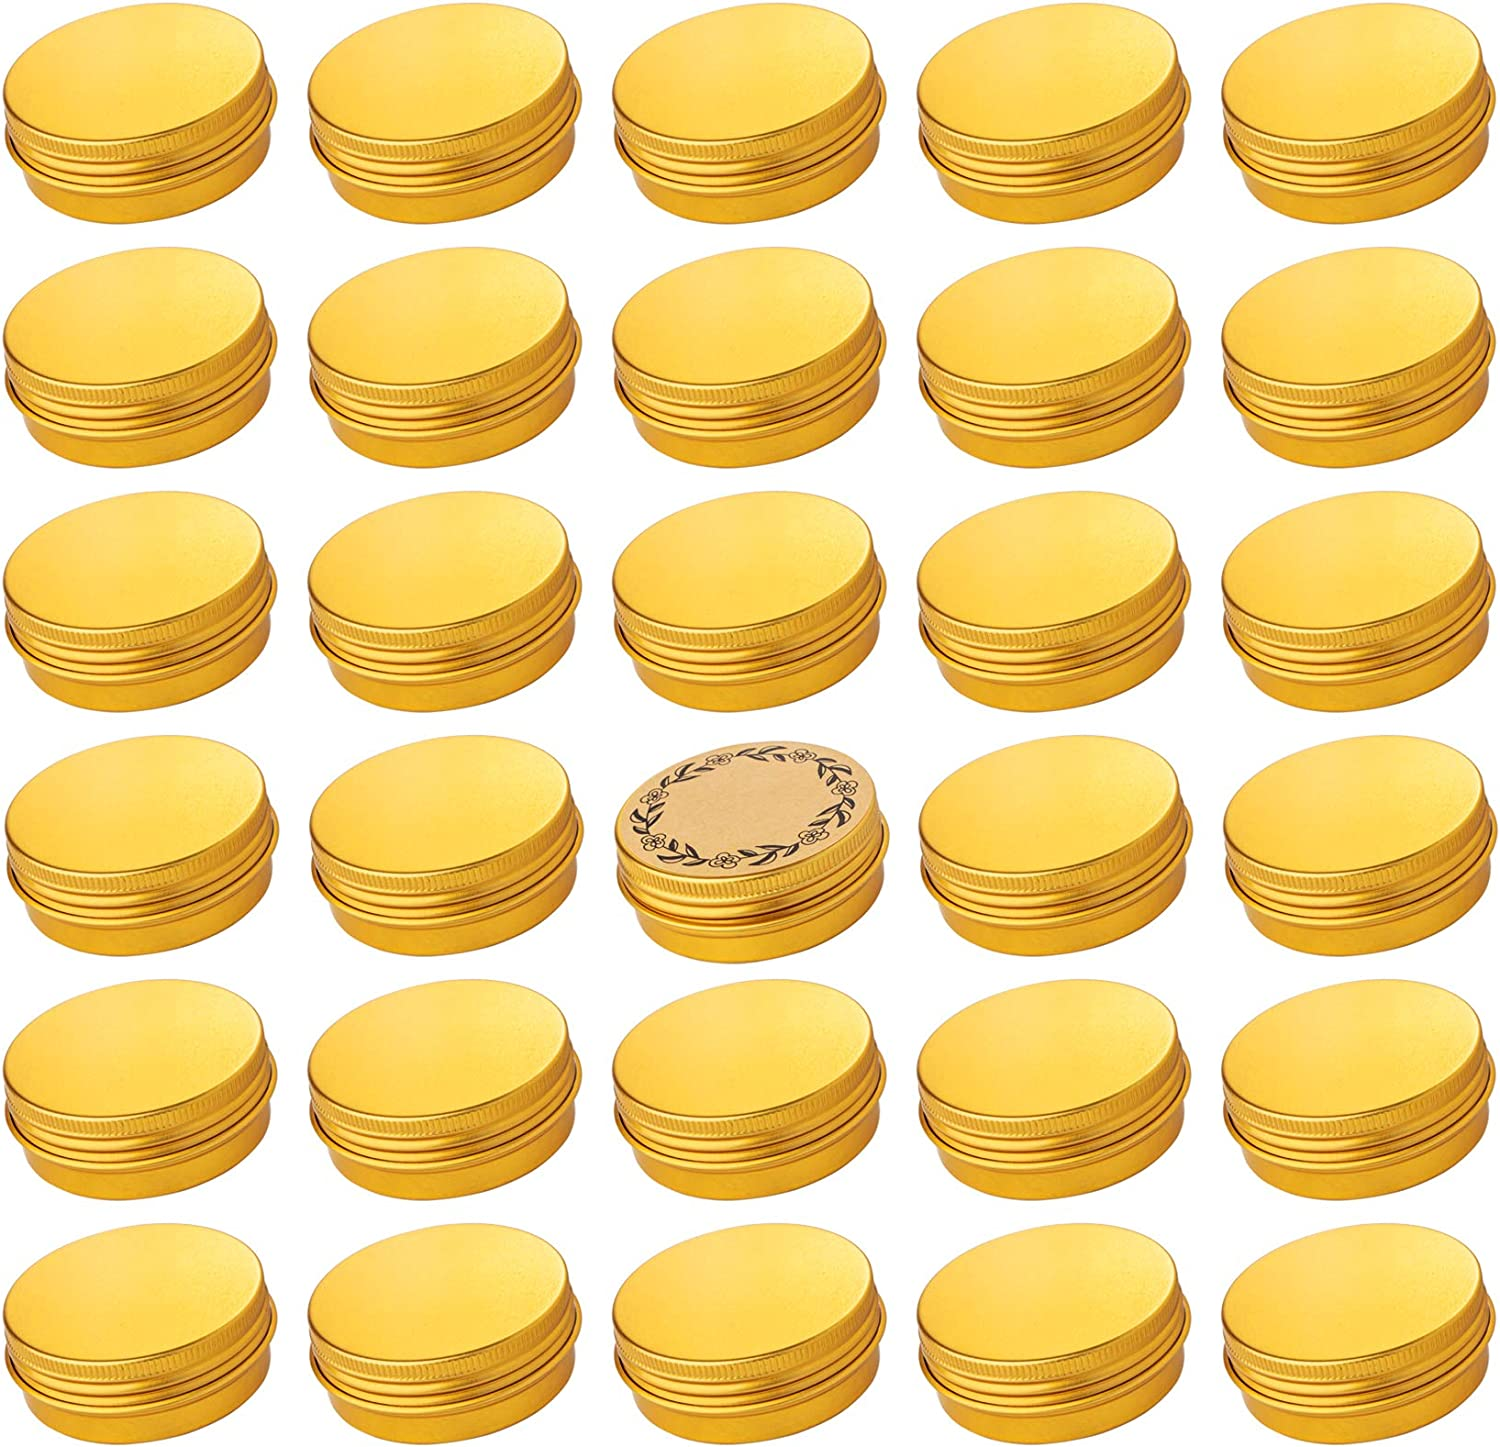 Screw Top Gold Aluminum Tin Jar with Screw Lid and Blank Labels - 31pcs, 1 oz